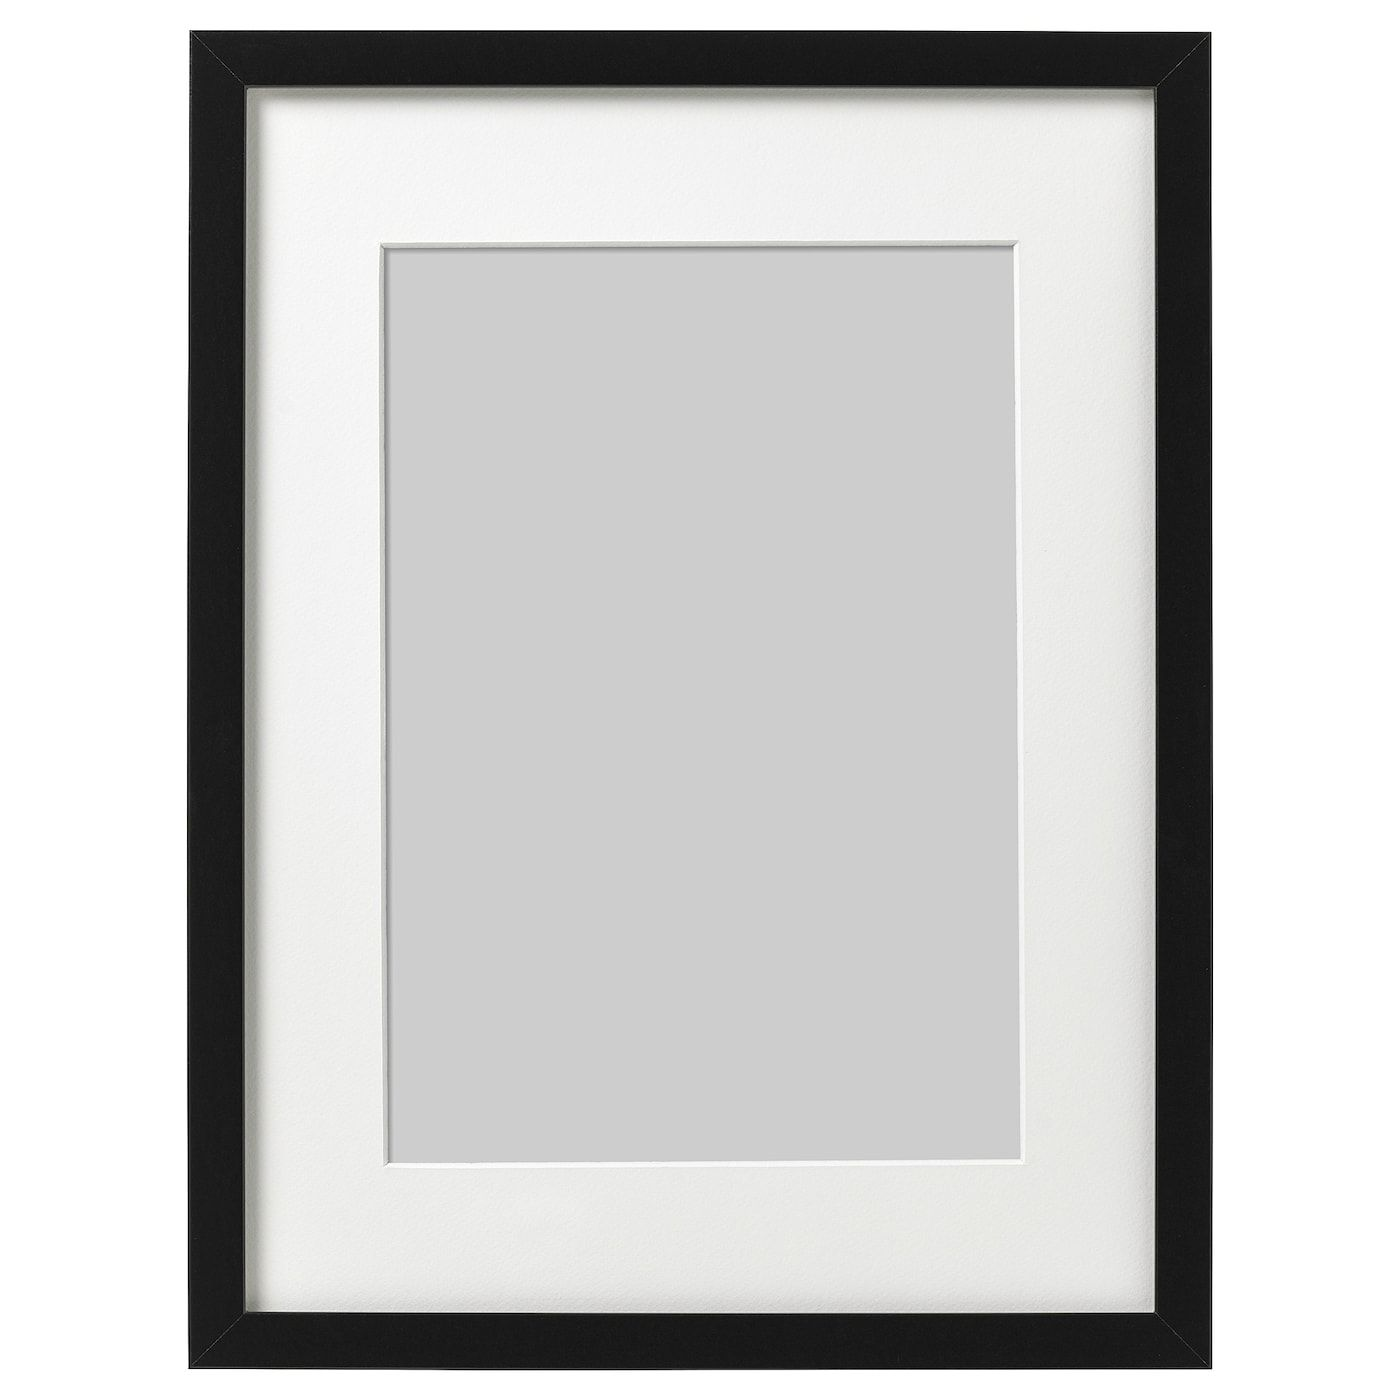 Ribba Frame Black 12x16 In 2020 Ikea Picture Frame Ribba Frame Ikea Ribba Frames